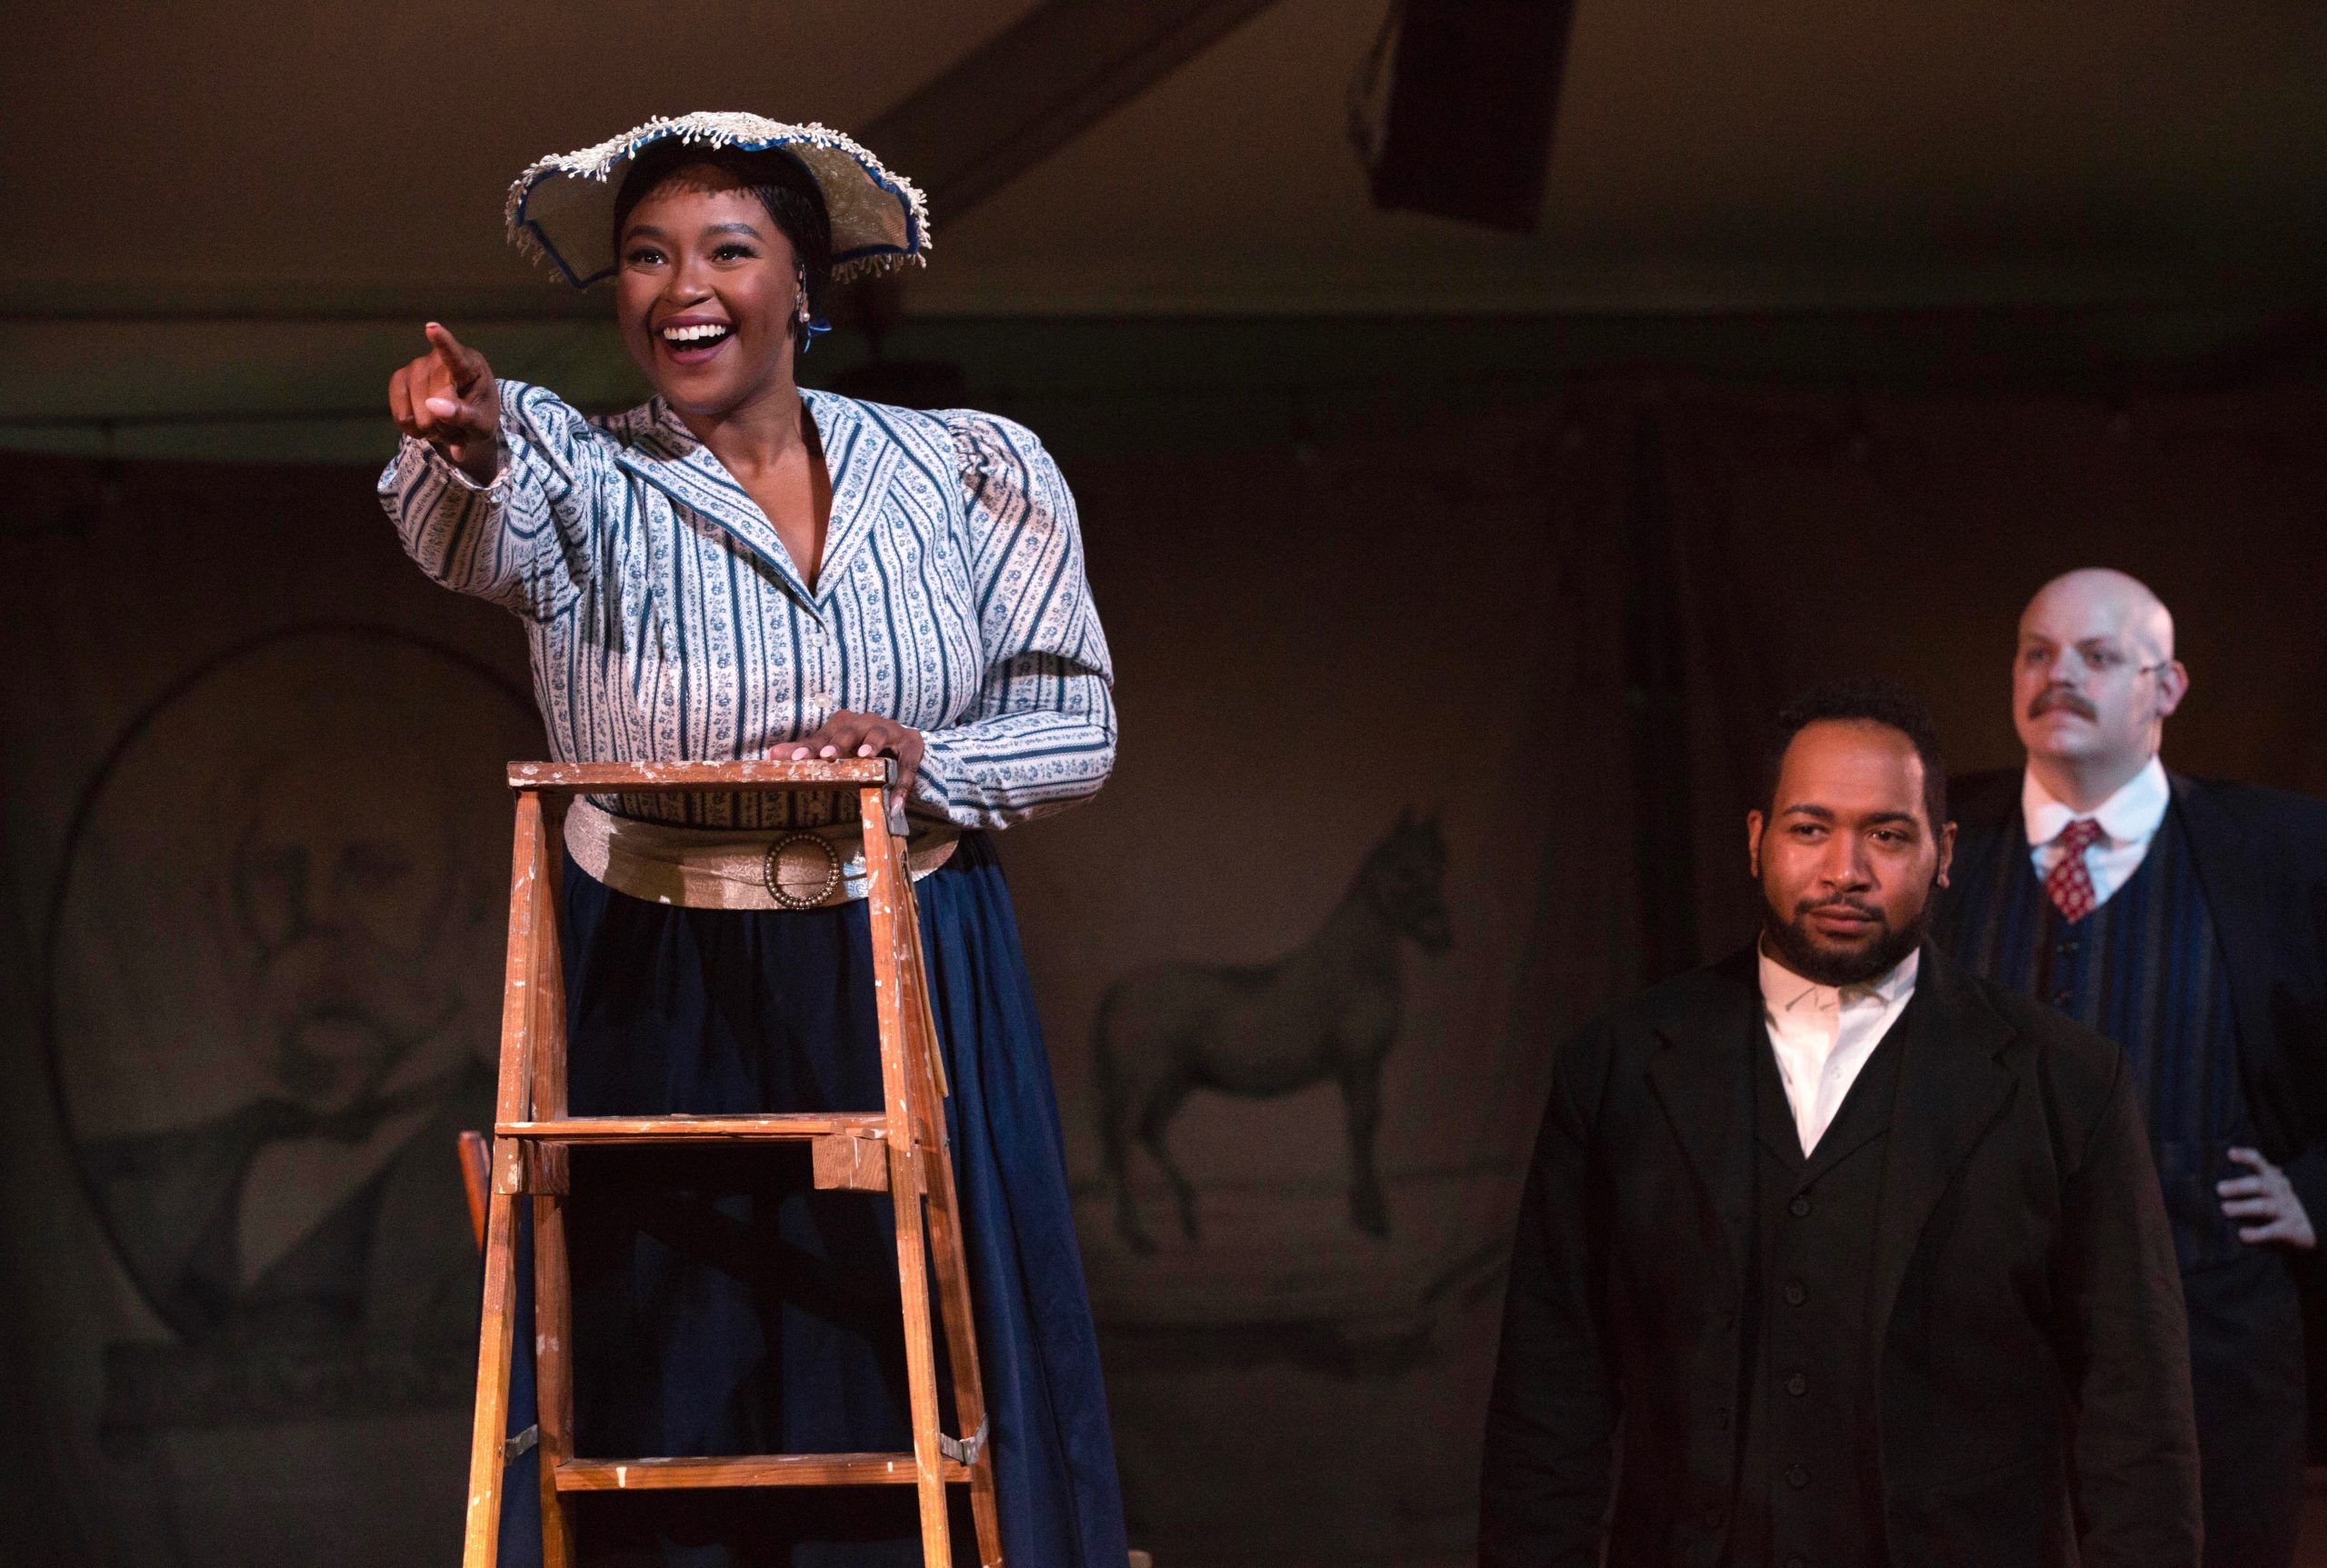 Marguerite Westinghouse (Melessie Clark) beholds the bright magic of a town lighted by AC. Husband George knew it would work and so, apparently, did his colleague Franklin Pope (Connor McCanlus).